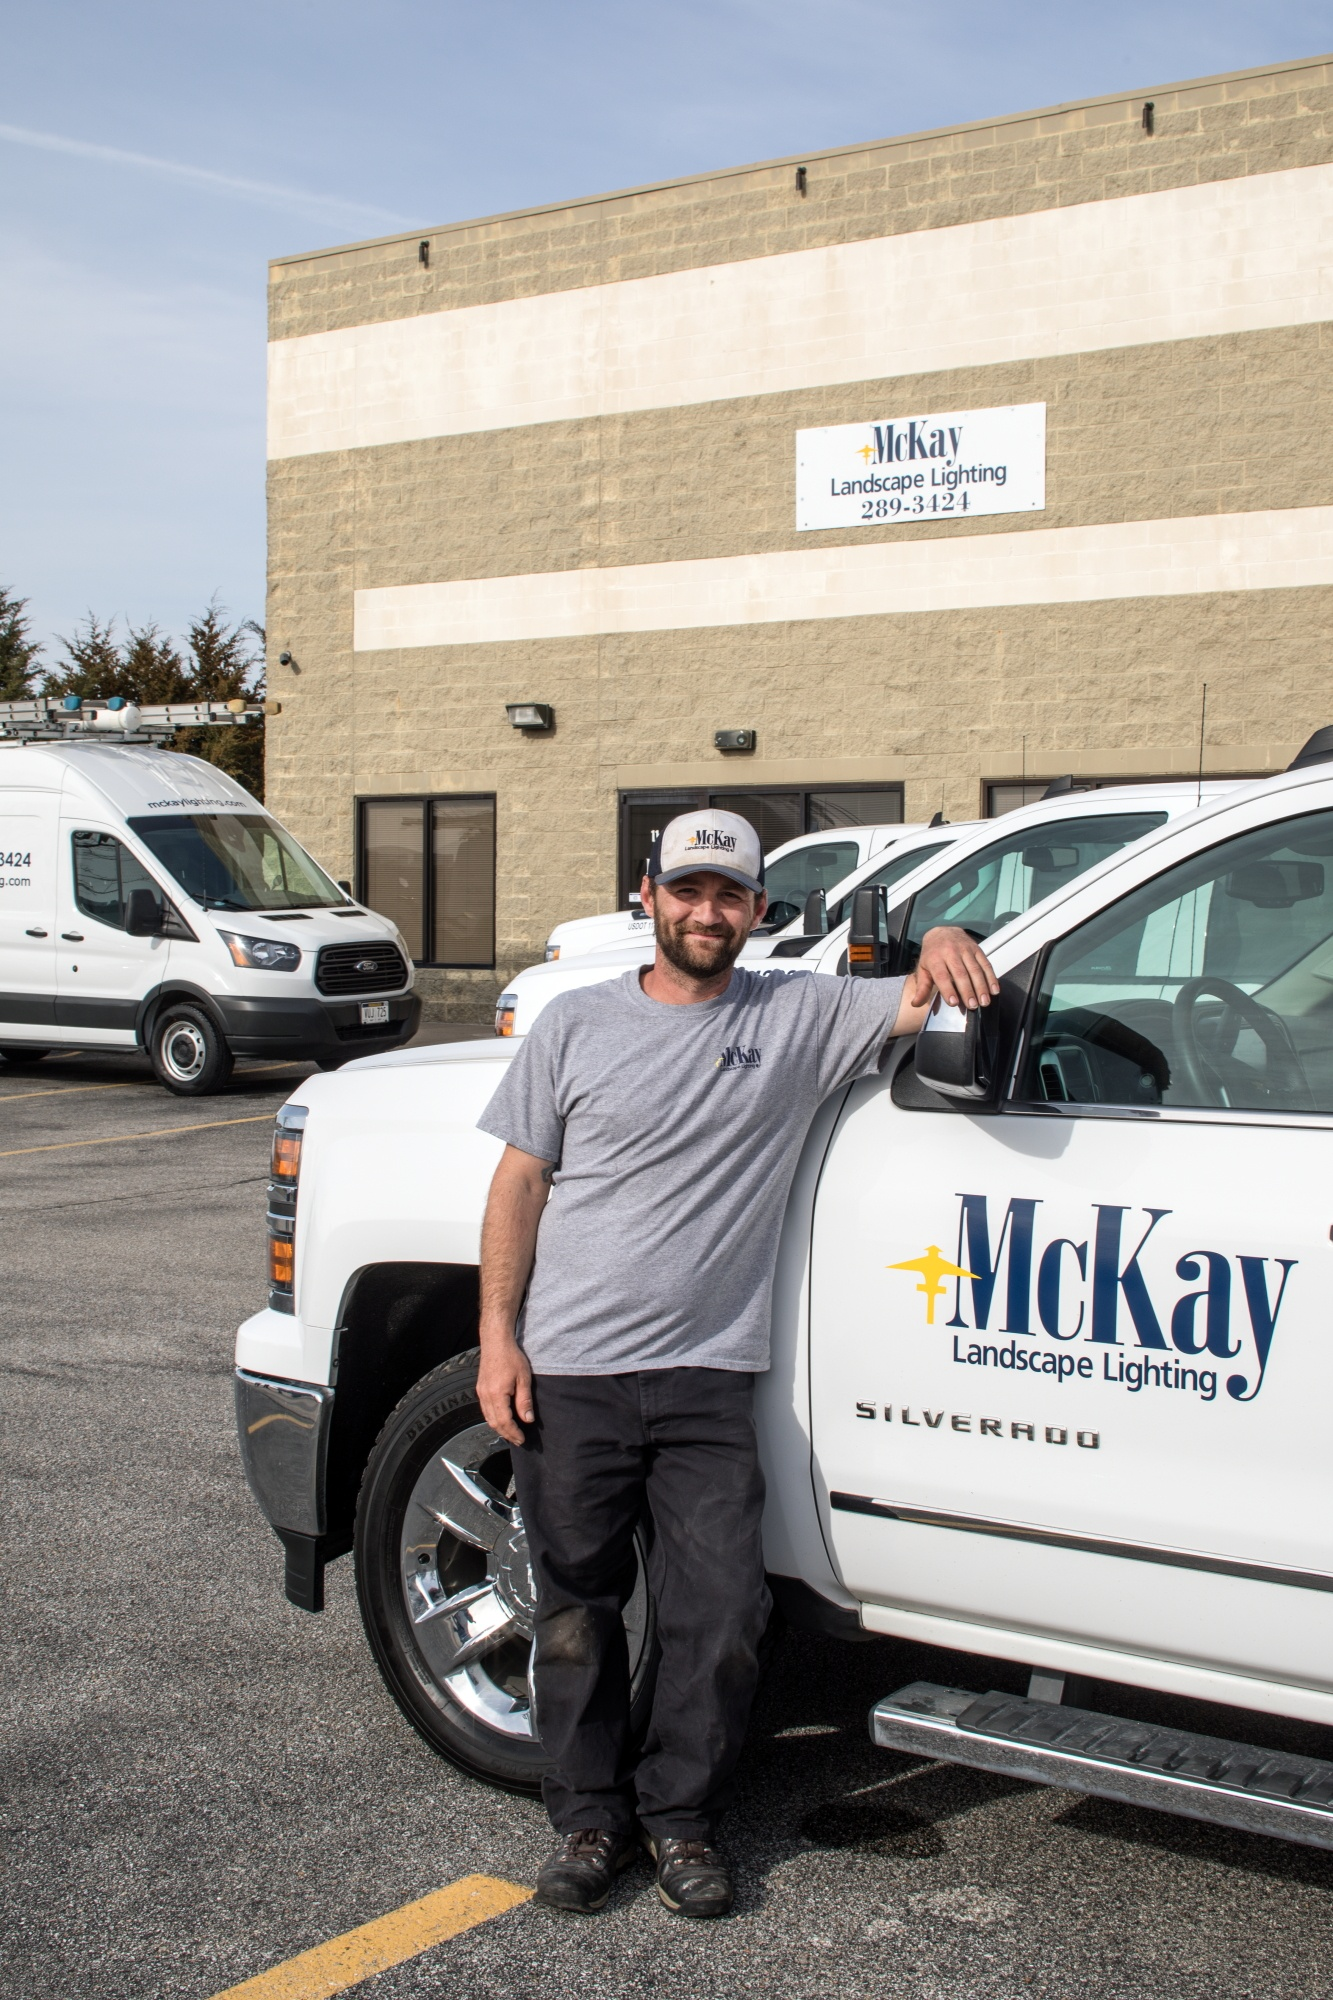 Meet a new member of the McKay team, Nick. Click to learn more about him and his role as an outdoor lighting installer. | McKay Landscape Lighting, Omaha Nebraska